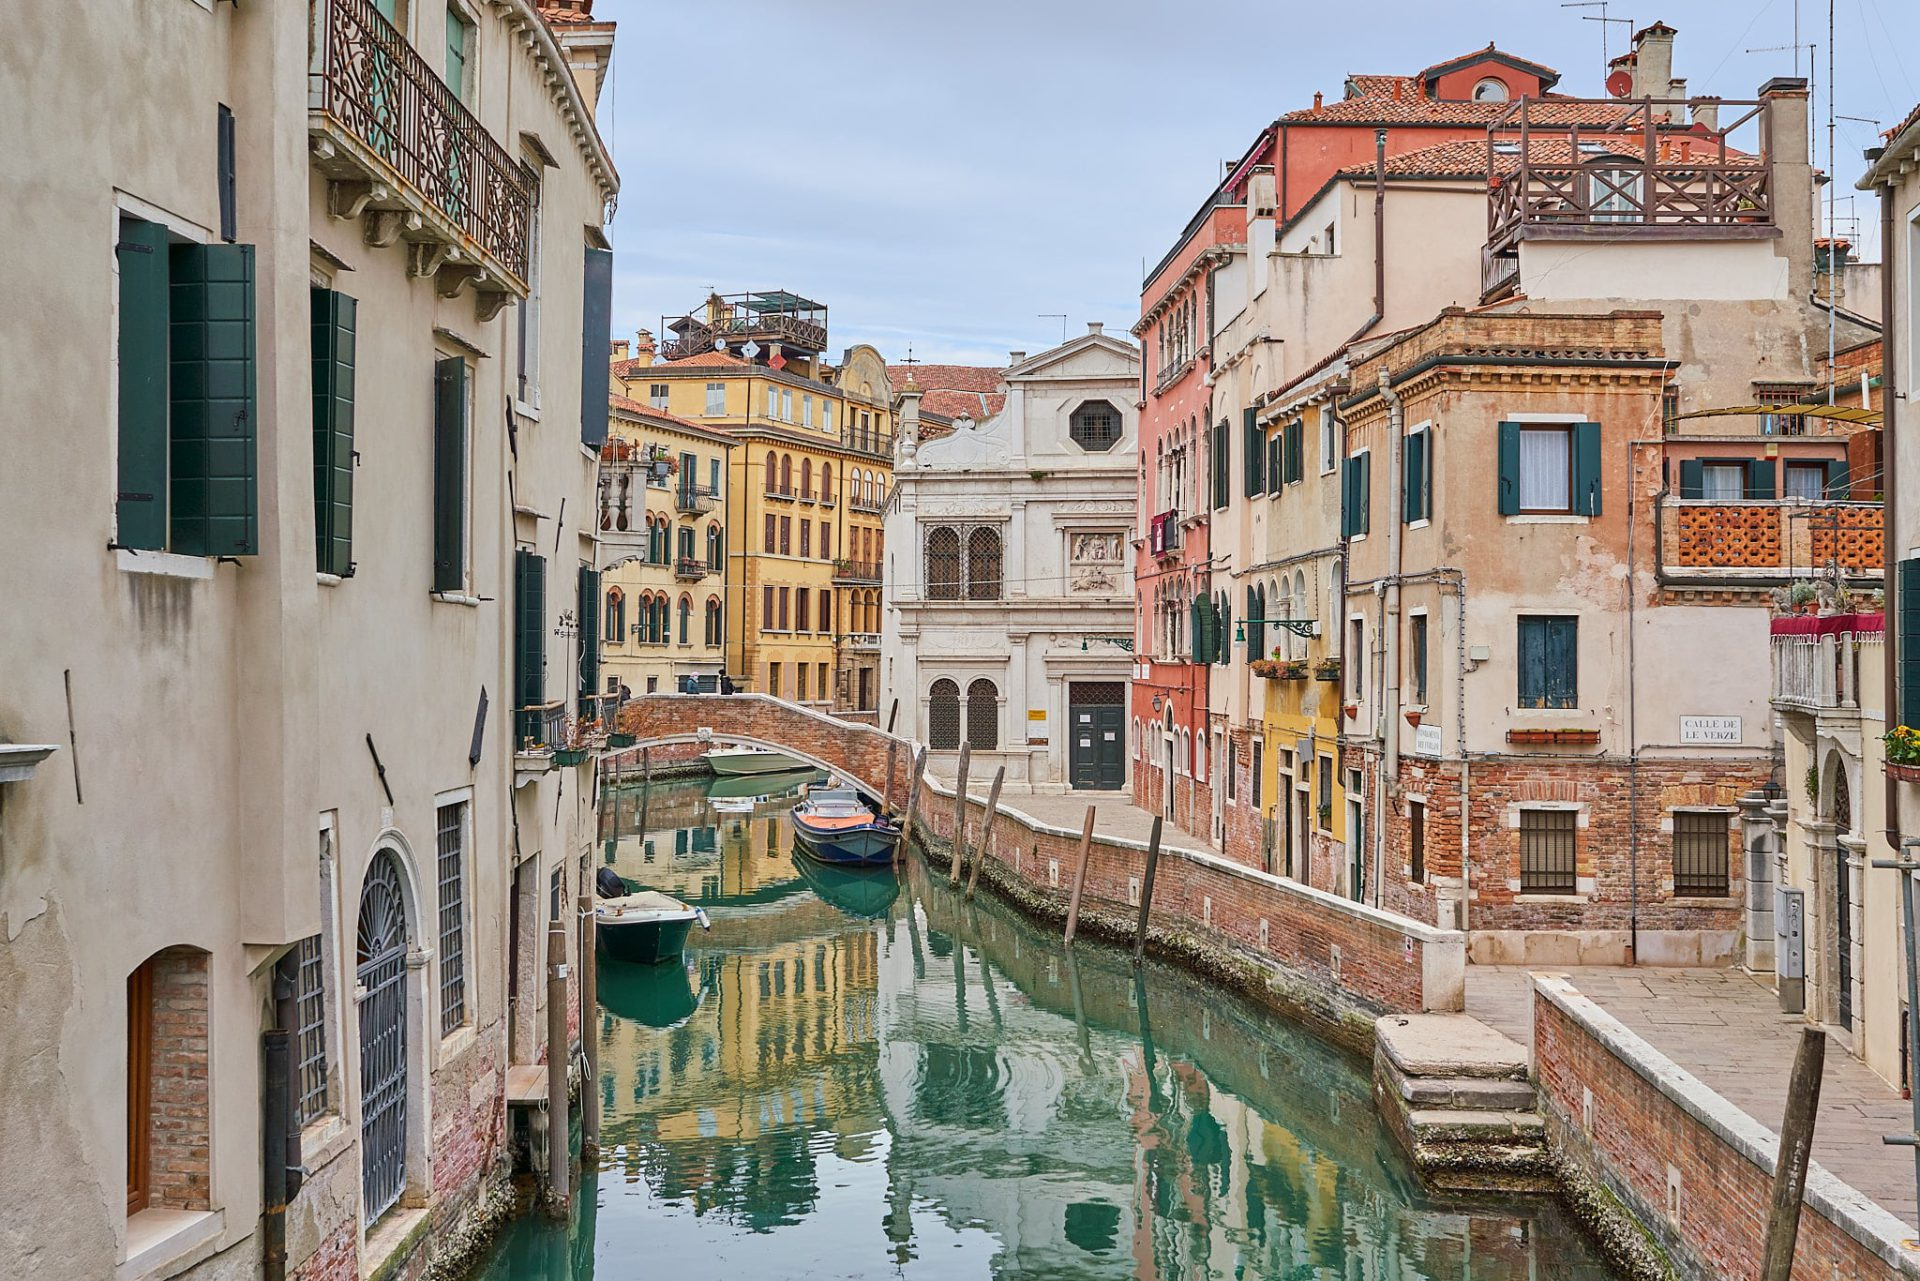 Photo of a canal in Venice, shot from a bridge